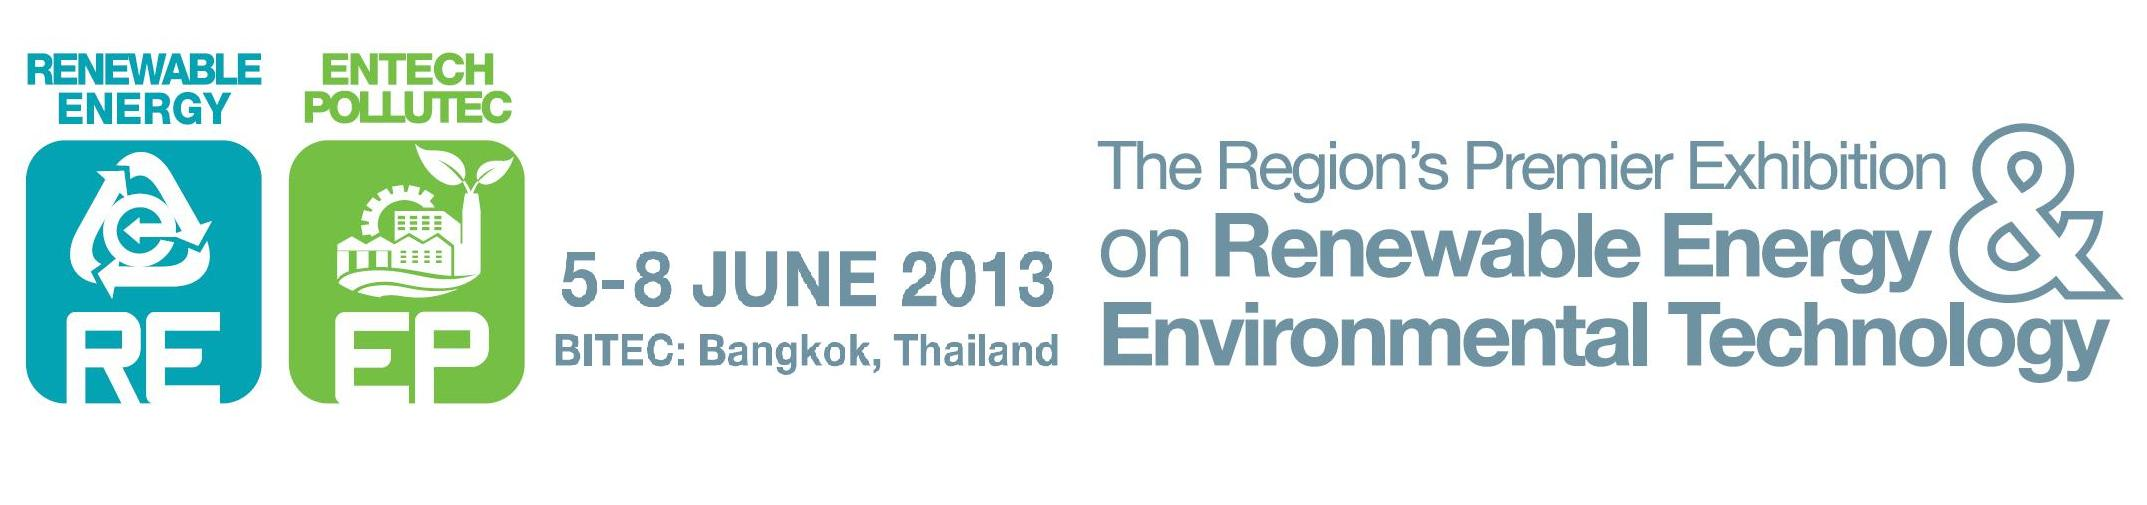 RE Asia 2013, Business Opportunities in Thailand and ASEAN